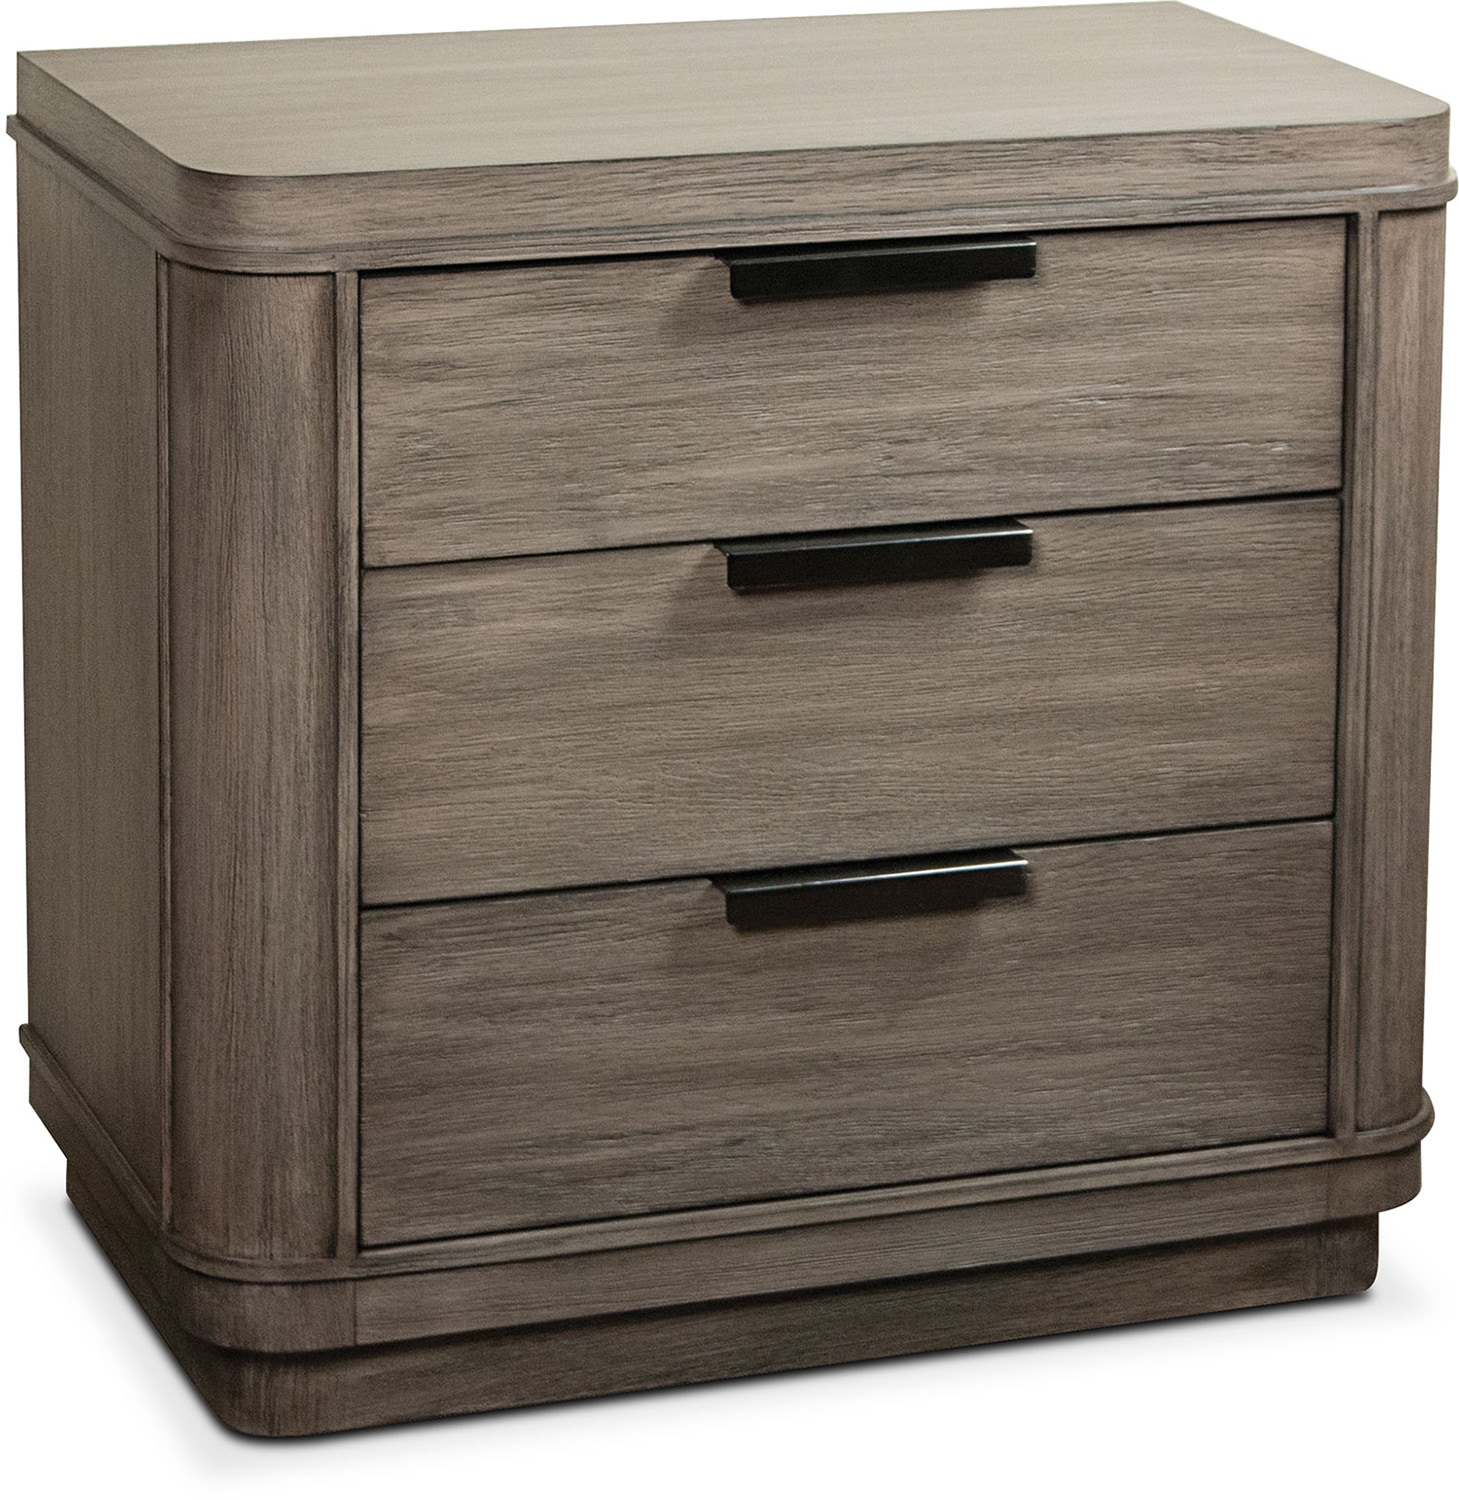 Bedroom Furniture - Malibu Nightstand - Gray